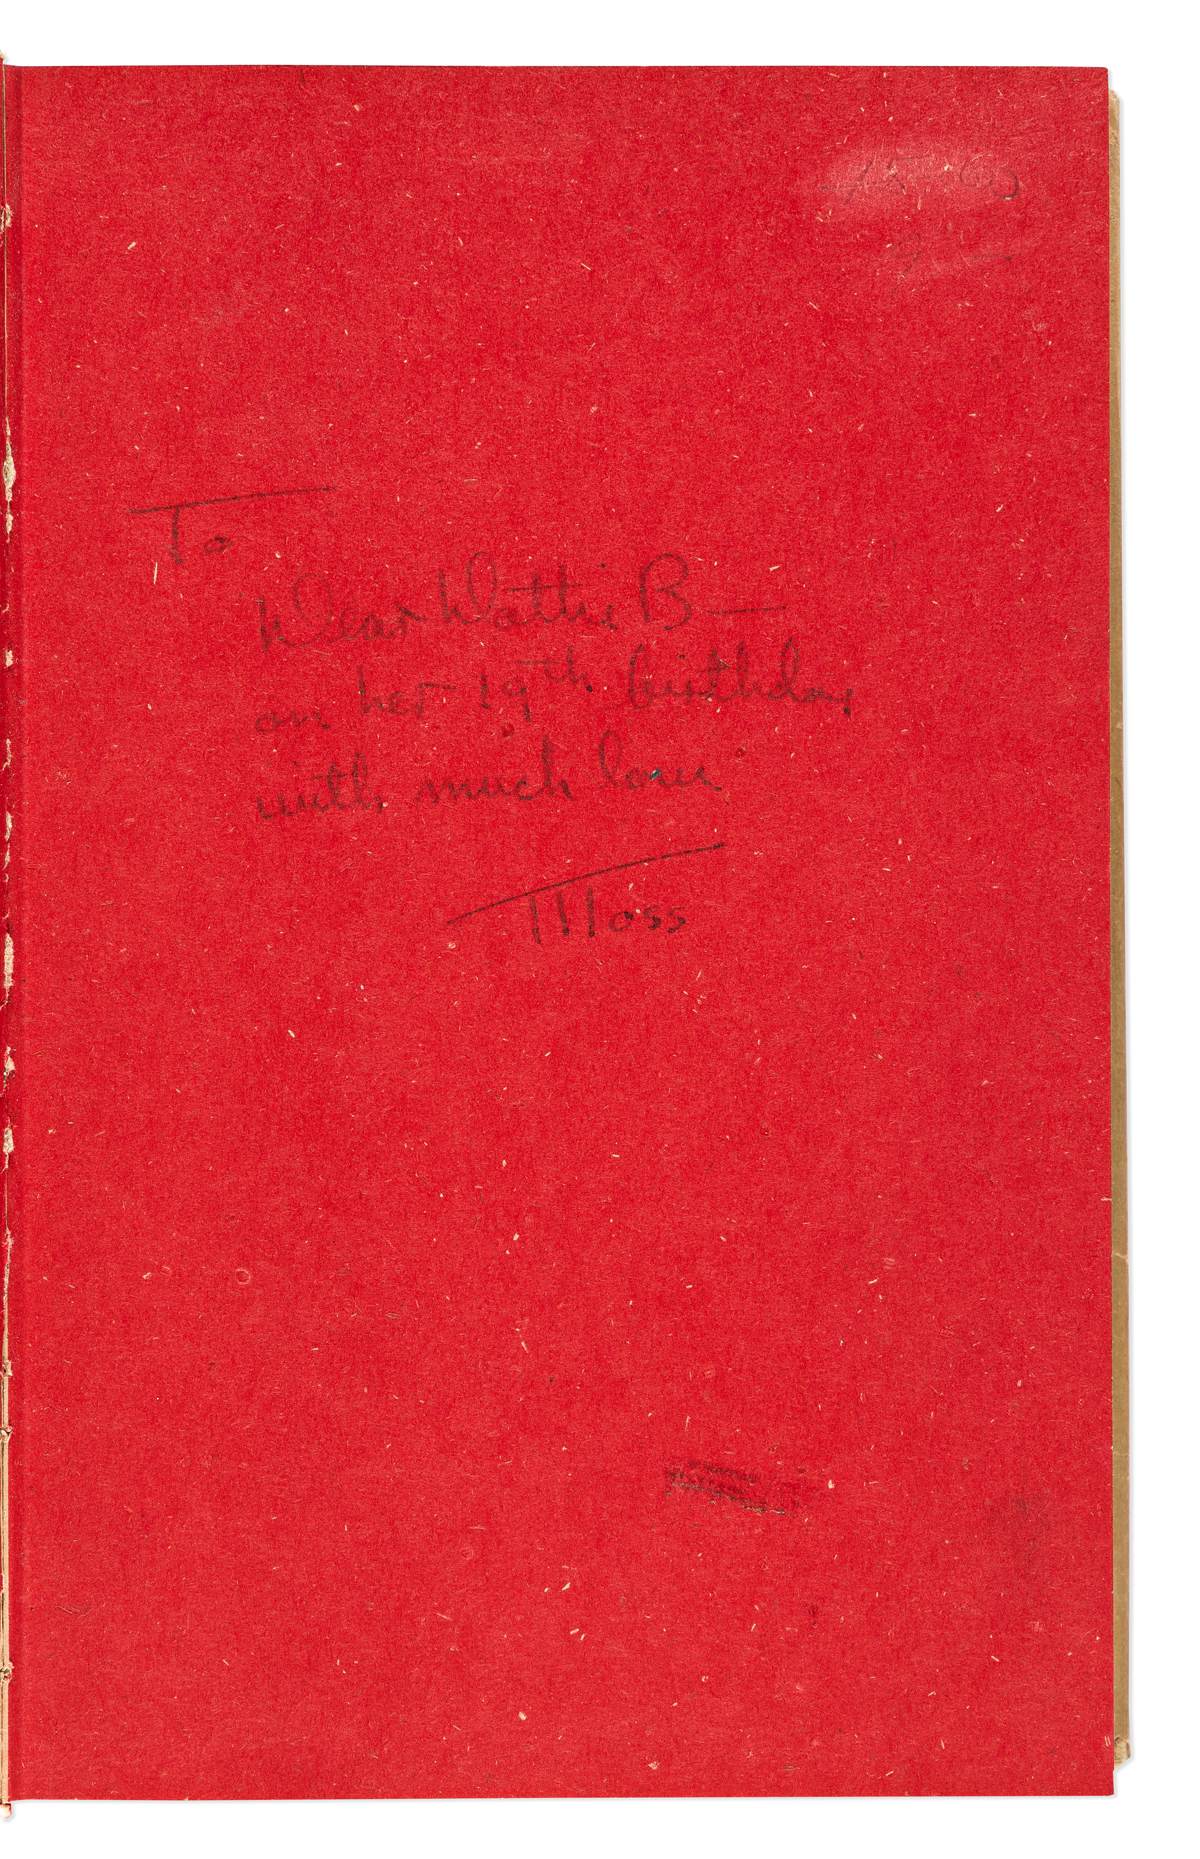 MOSS HART (1904-1961) Two books, each Signed and Inscribed, on the front free endpaper: Hart and Kaufman. The Fabulous Invalid * Act On